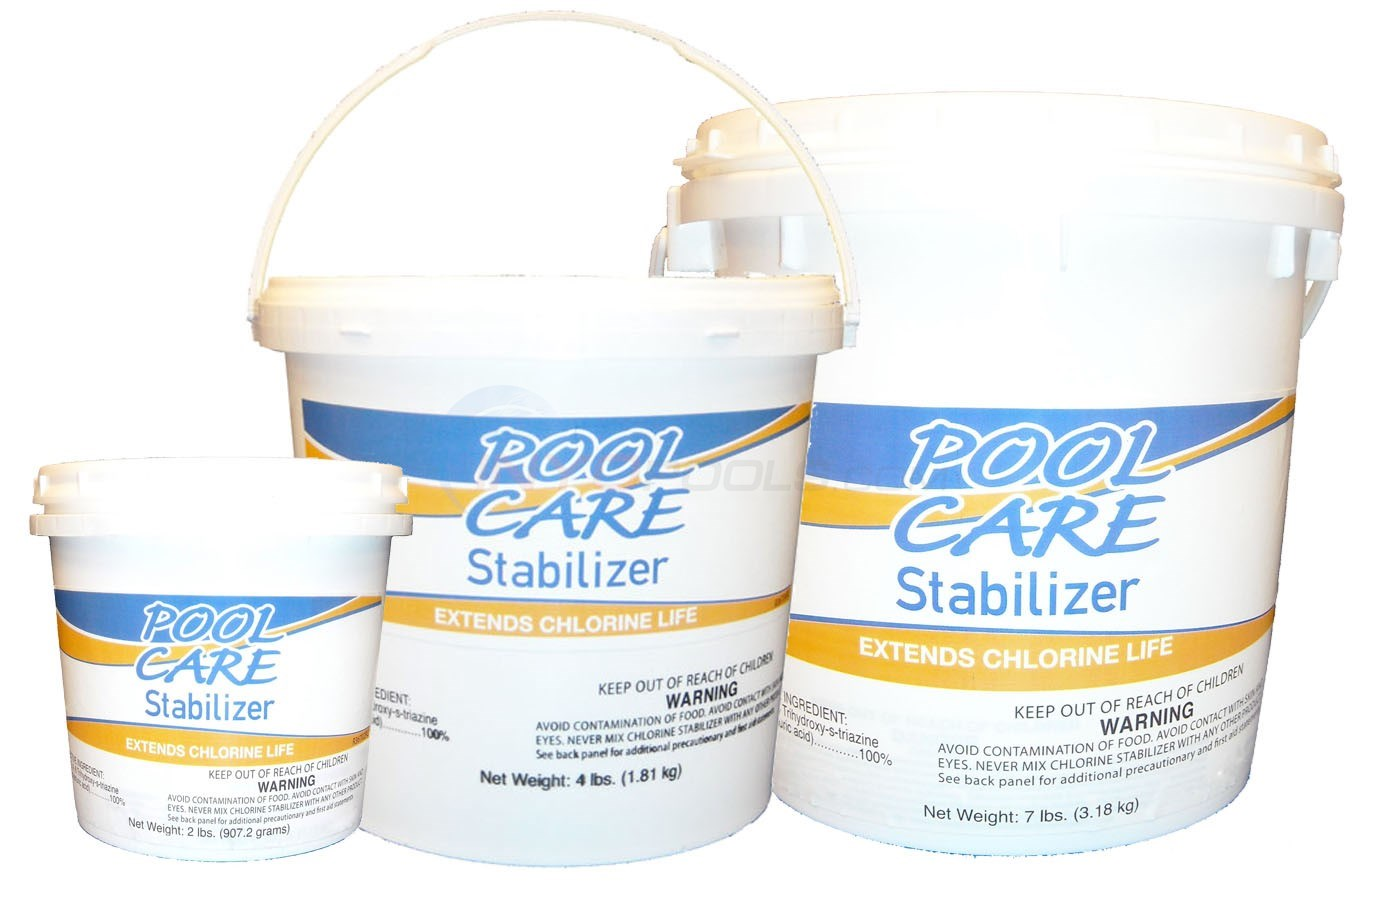 Blue Wave Stabilizer 4 lb pail - NY565